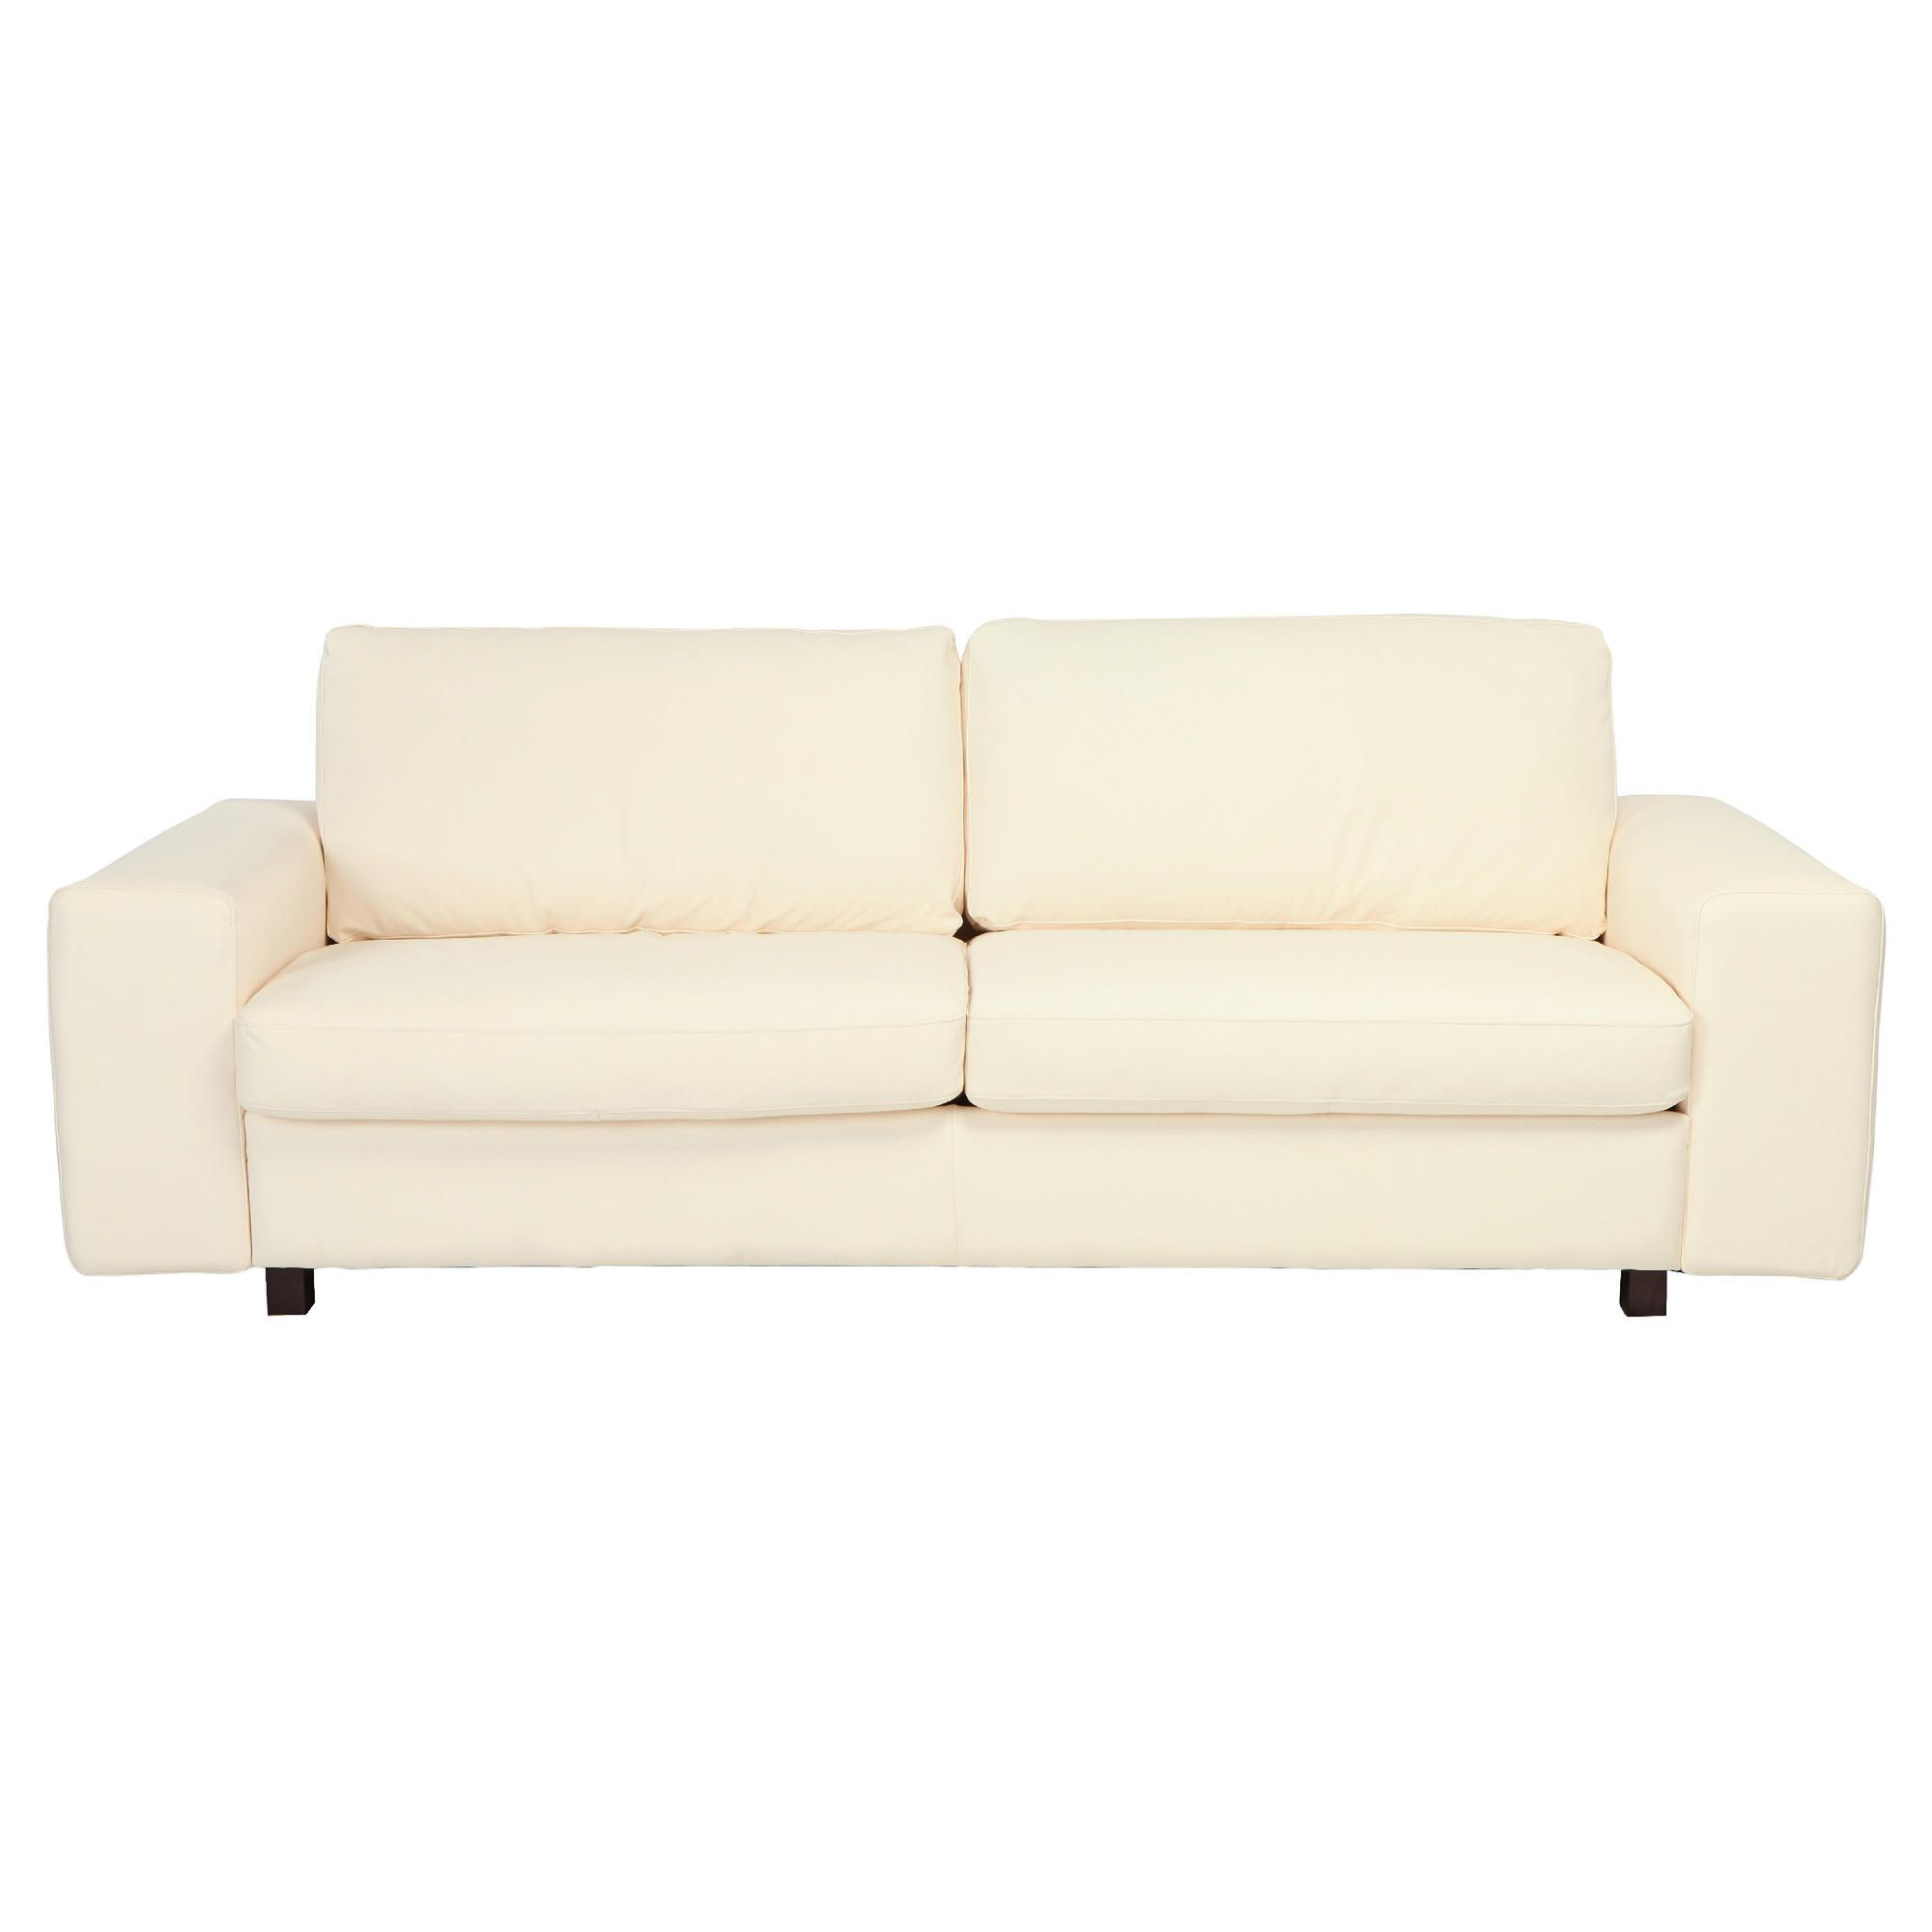 Marcello Large Leather Sofa White at Tesco Direct